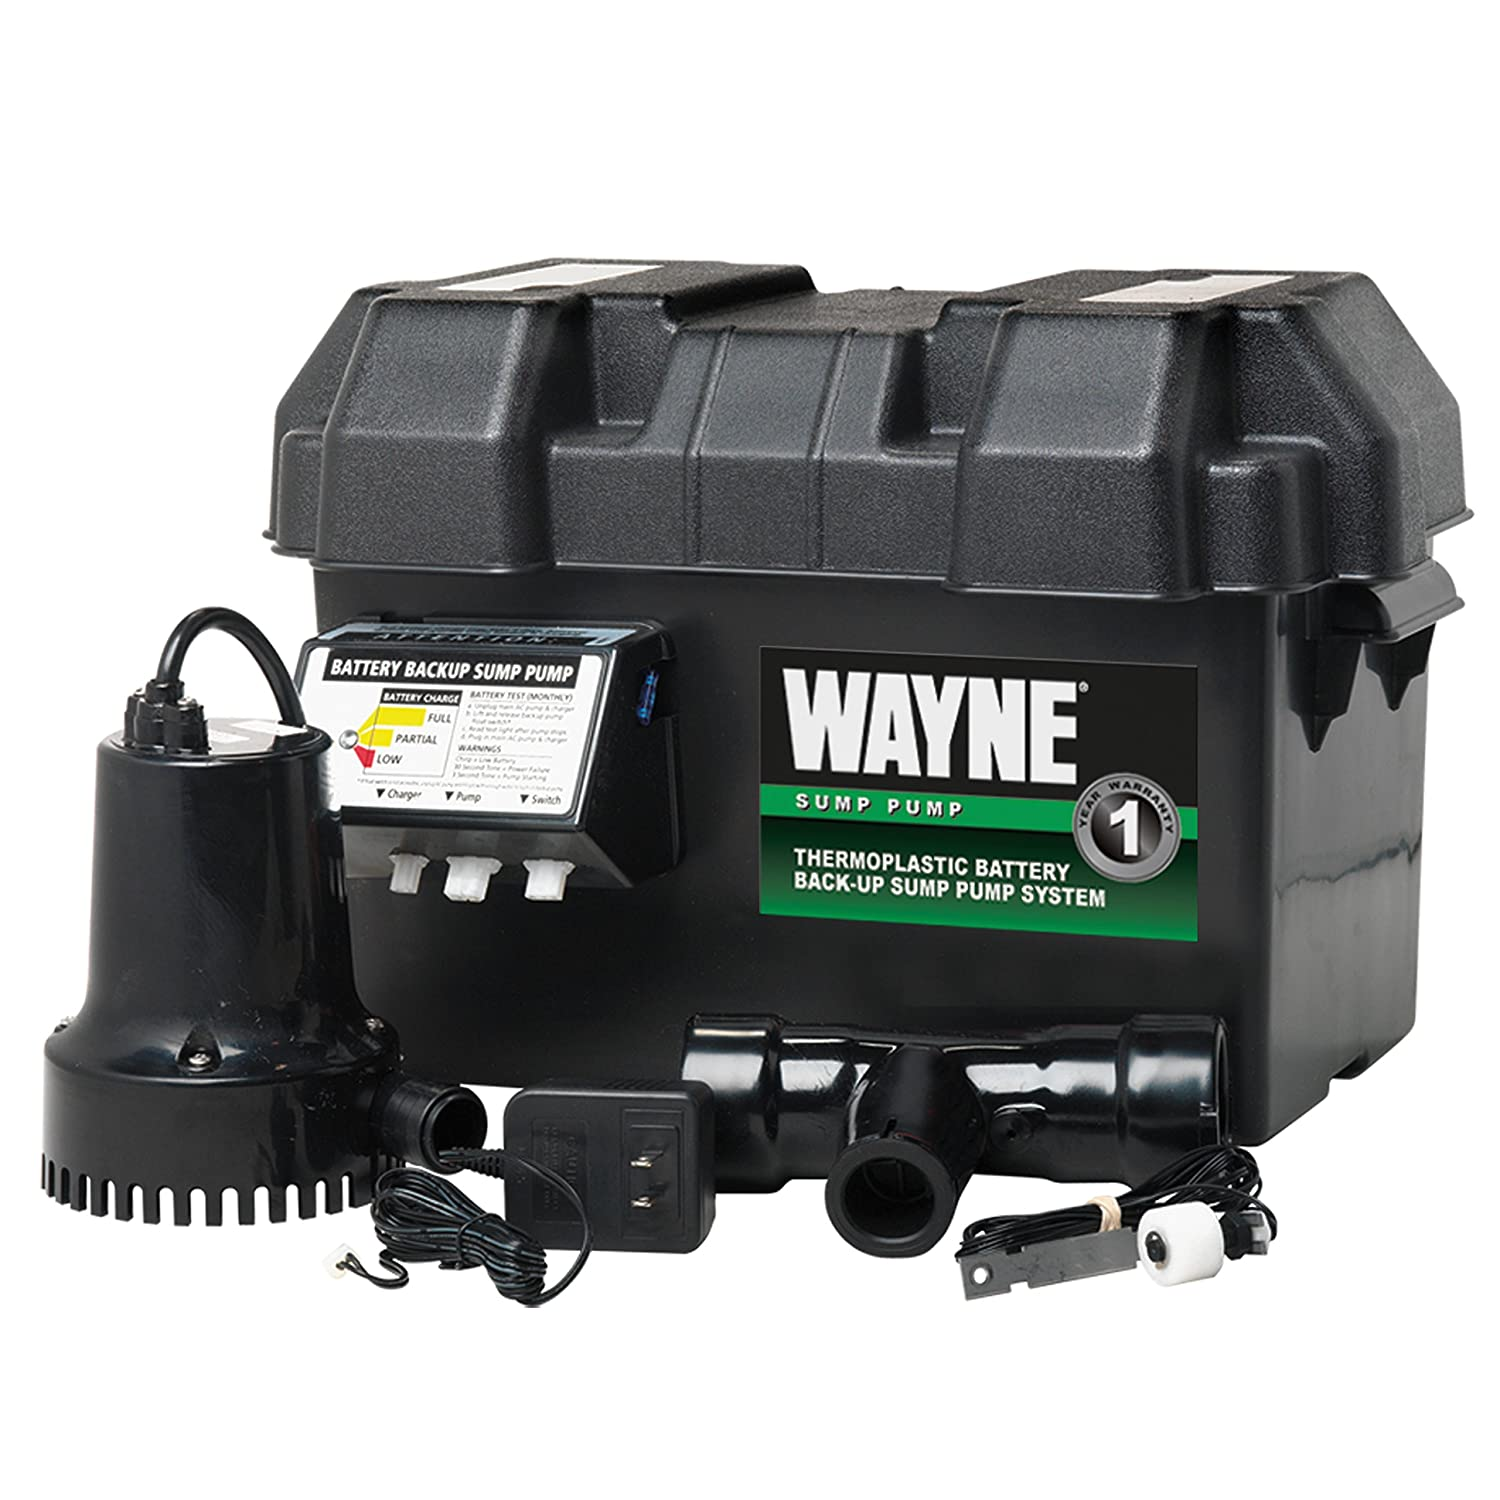 wayne esp15 battery back up 12 volt sump pump system amazon com  sump pump battery backup wiring diagram free picture #8